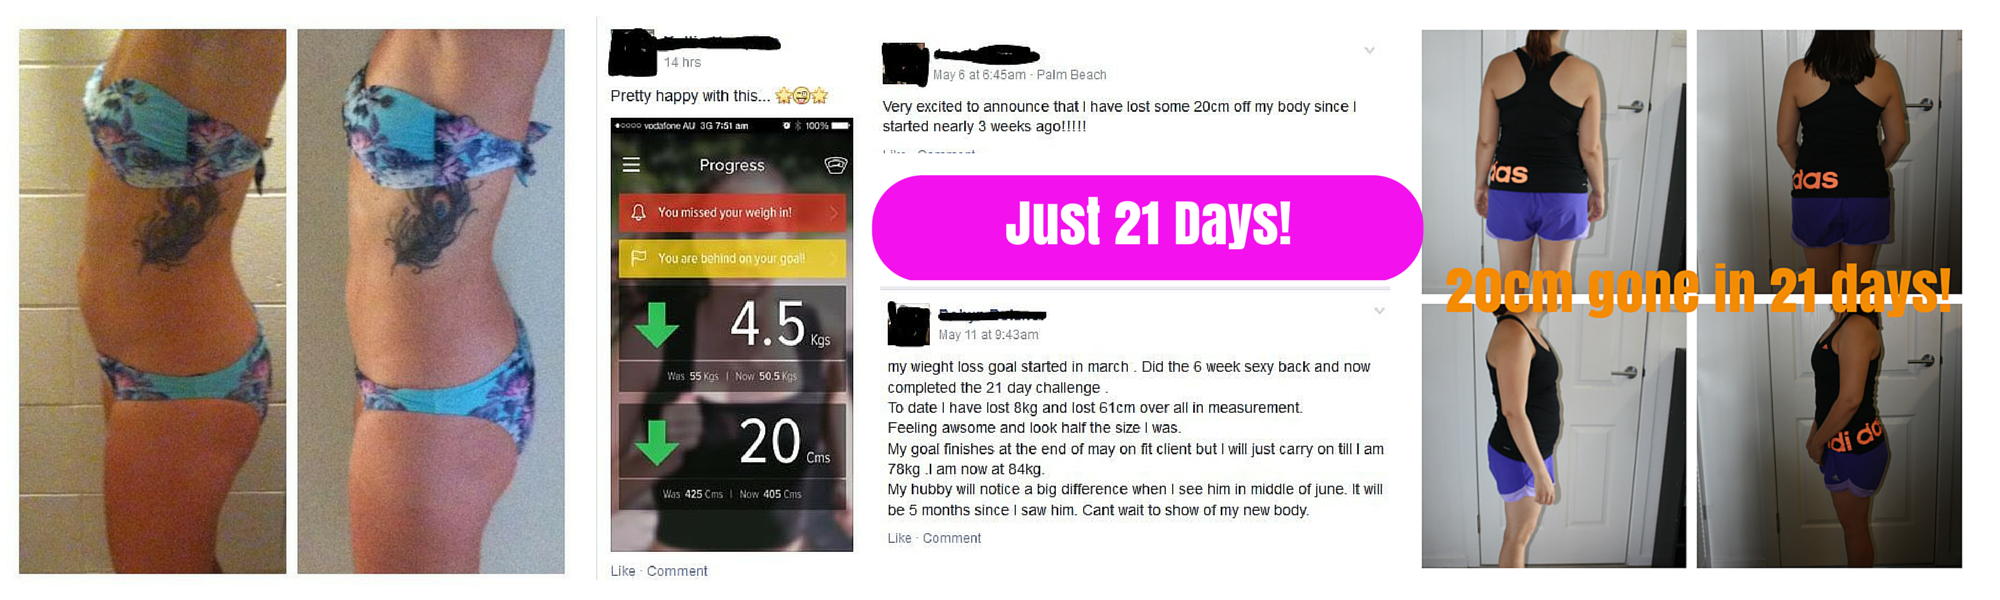 21 Day Challenge Results